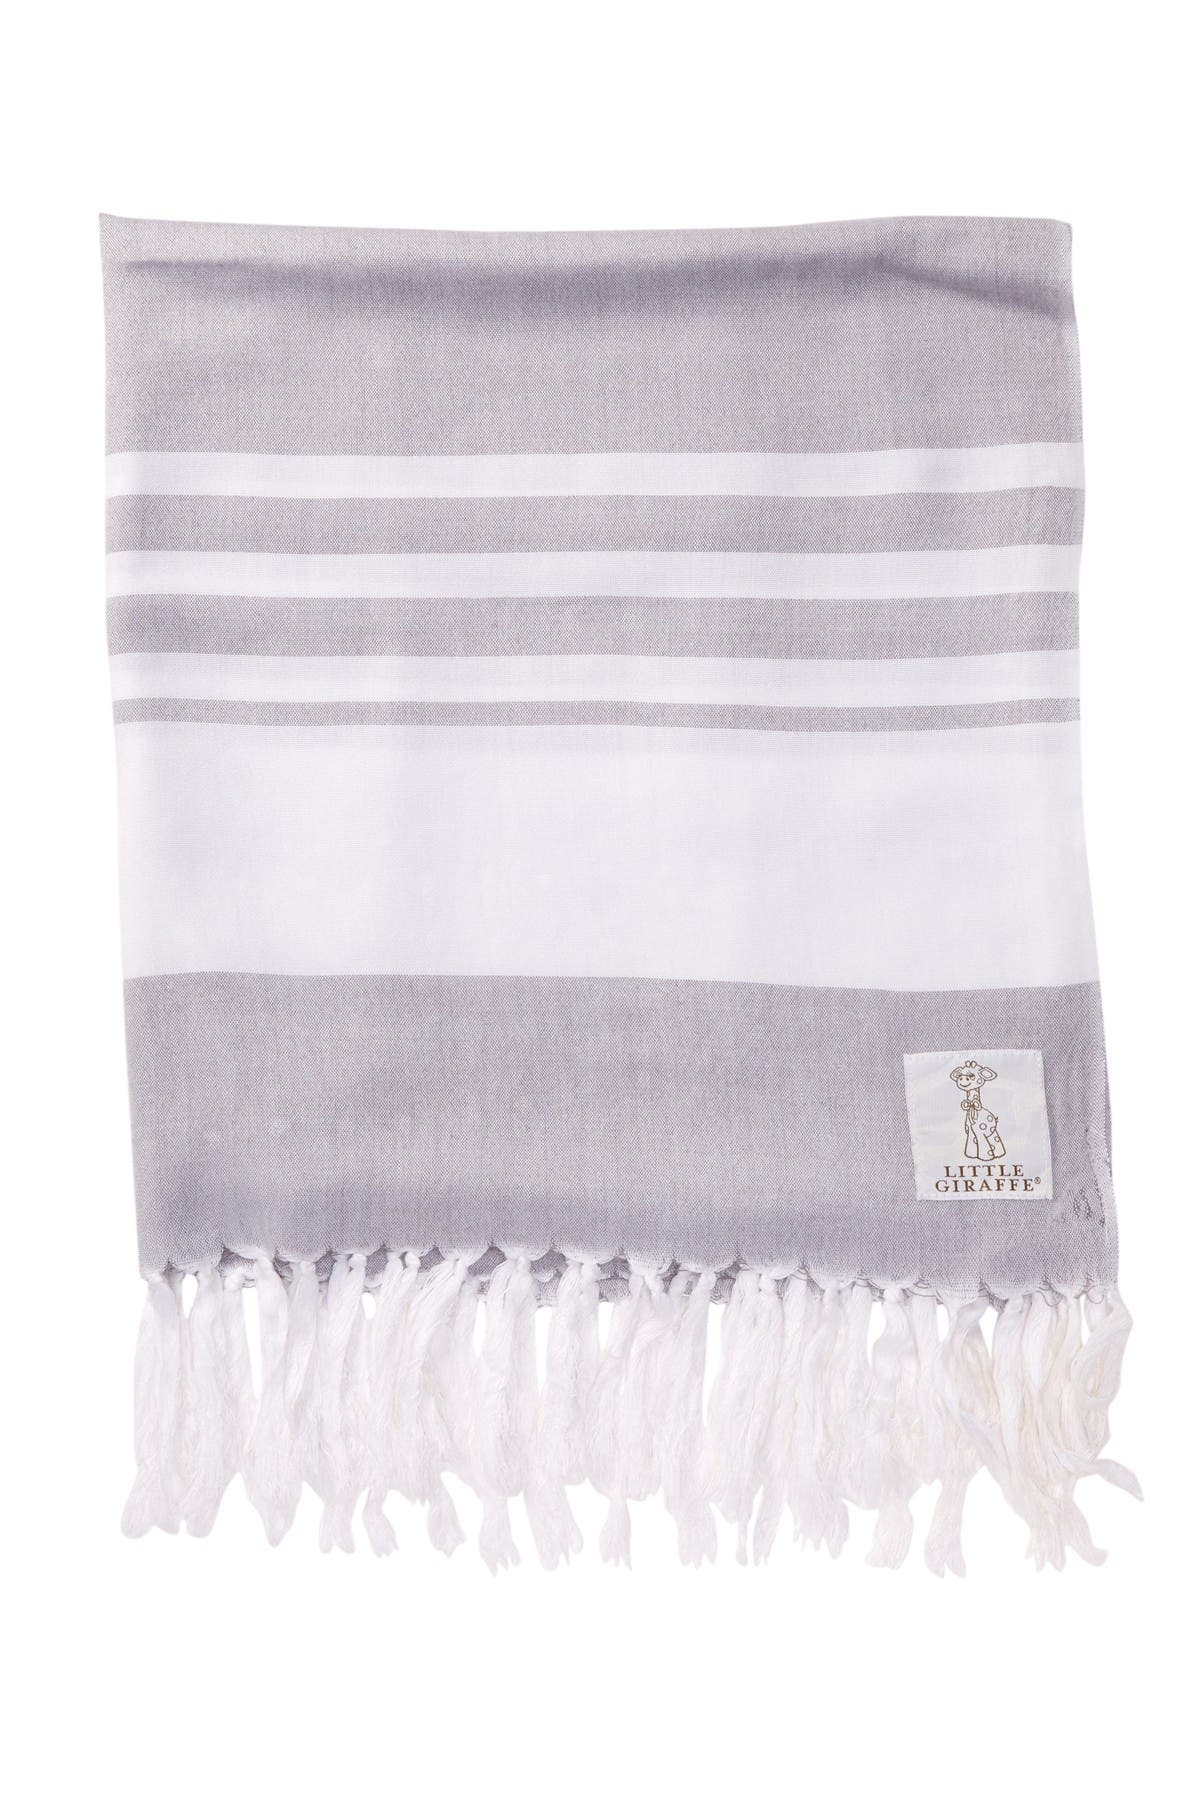 Image of Little Giraffe Turkish Towel